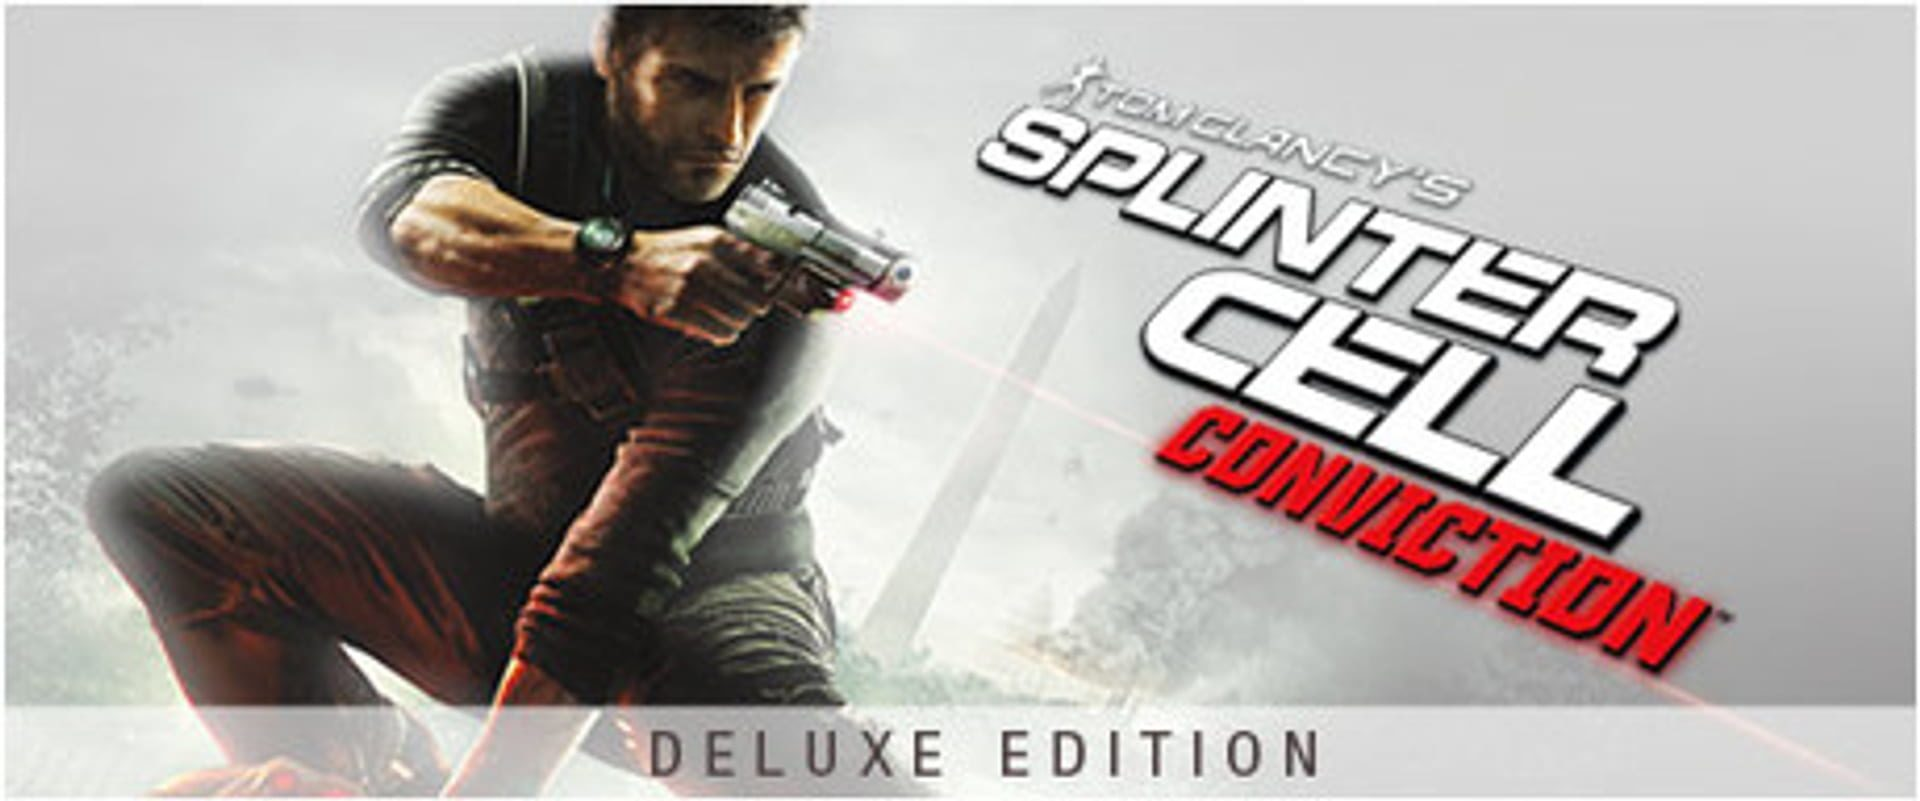 buy Tom Clancy's Splinter Cell: Conviction - Deluxe Edition cd key for all platform